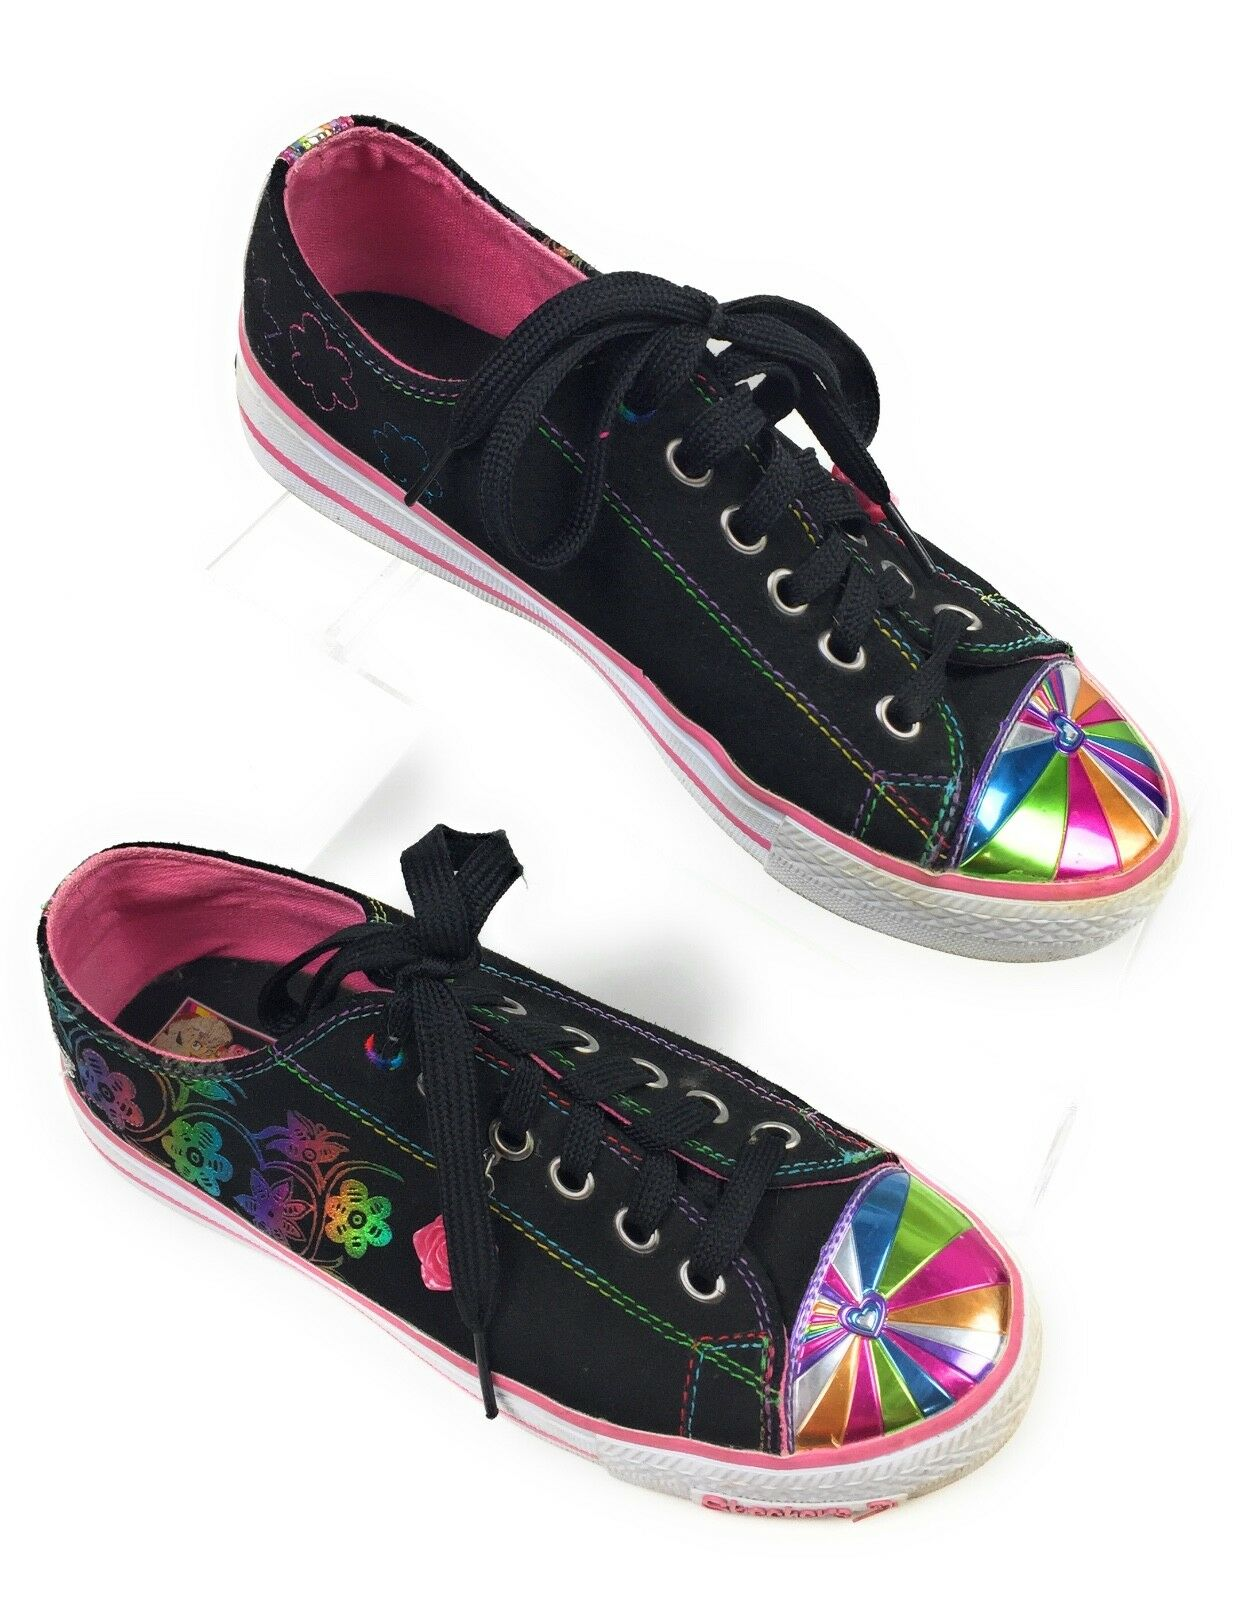 Skechers Fashion Sneakers Sporty Shorty Black, Rainbow Trim Women's 5 US, 37 EUR The latest discount shoes for men and women